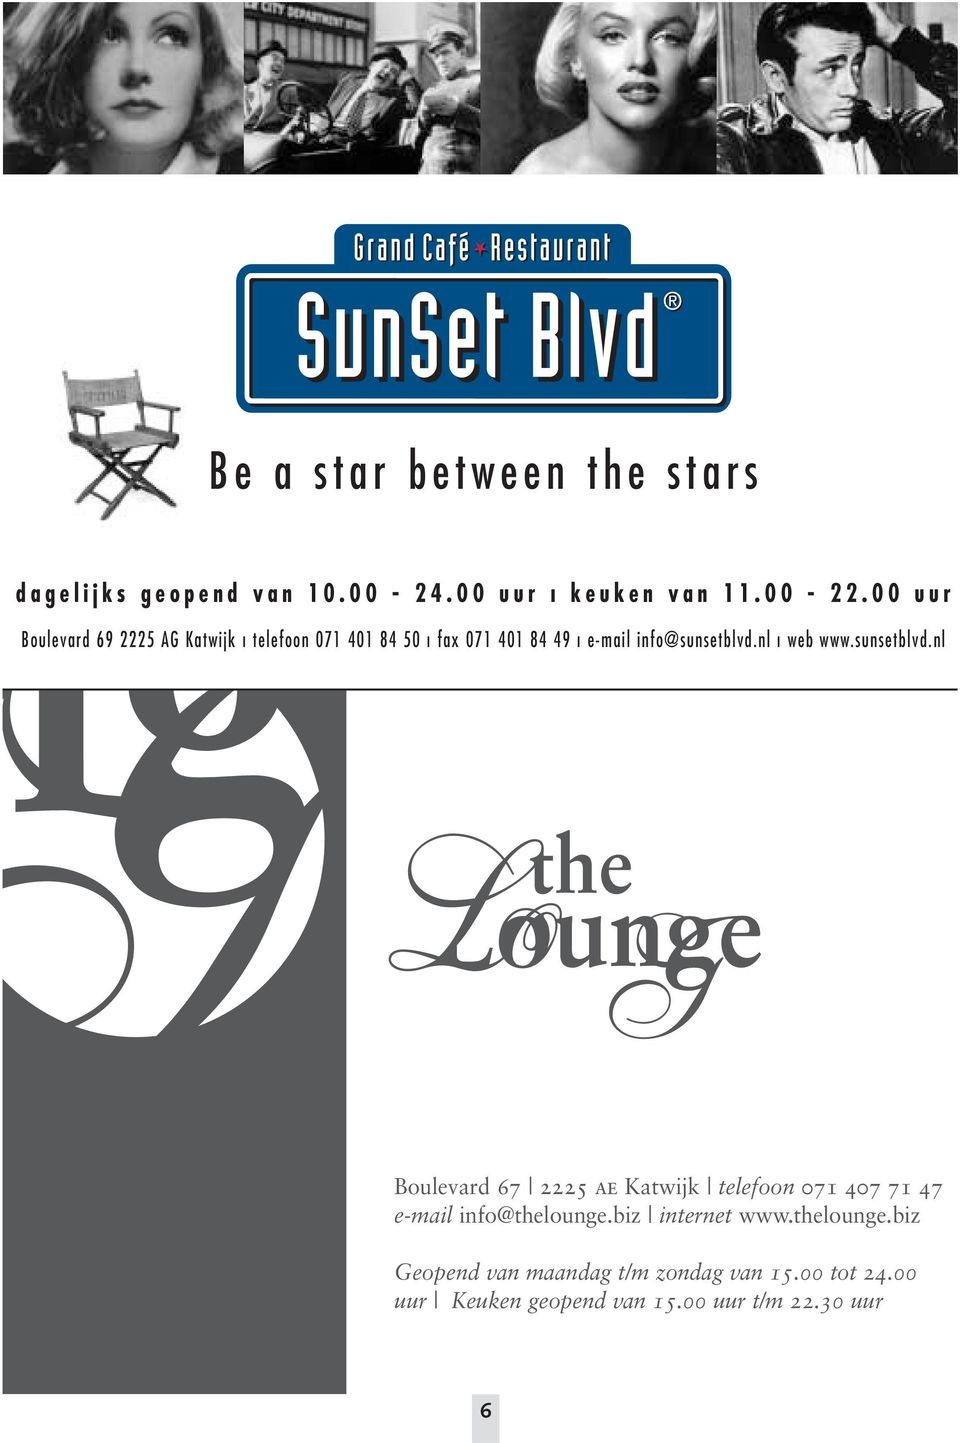 nl ı web www.sunsetblvd.nl Boulevard 67 2225 ae Katwijk telefoon 071 407 71 47 e-mail info@thelounge.